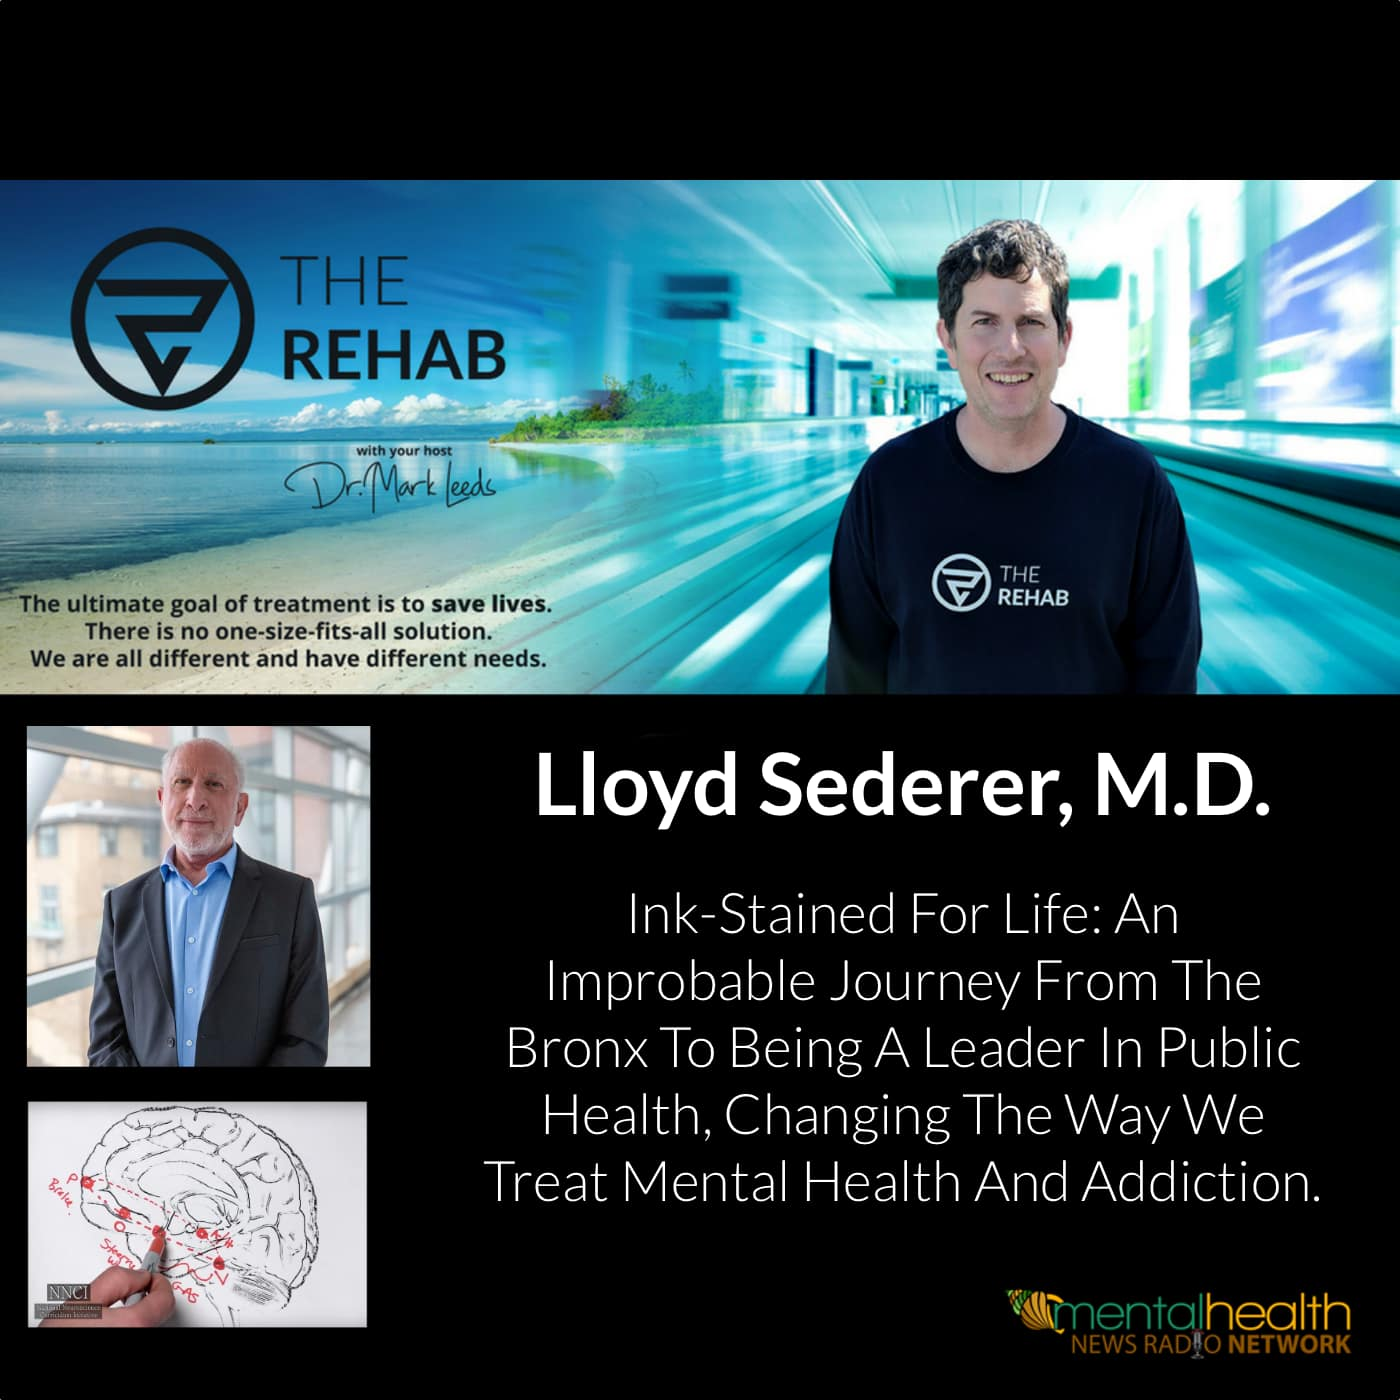 Lloyd Sederer, M.D.: A Leader In Public Health Discusses The Future Of Addiction Treatment